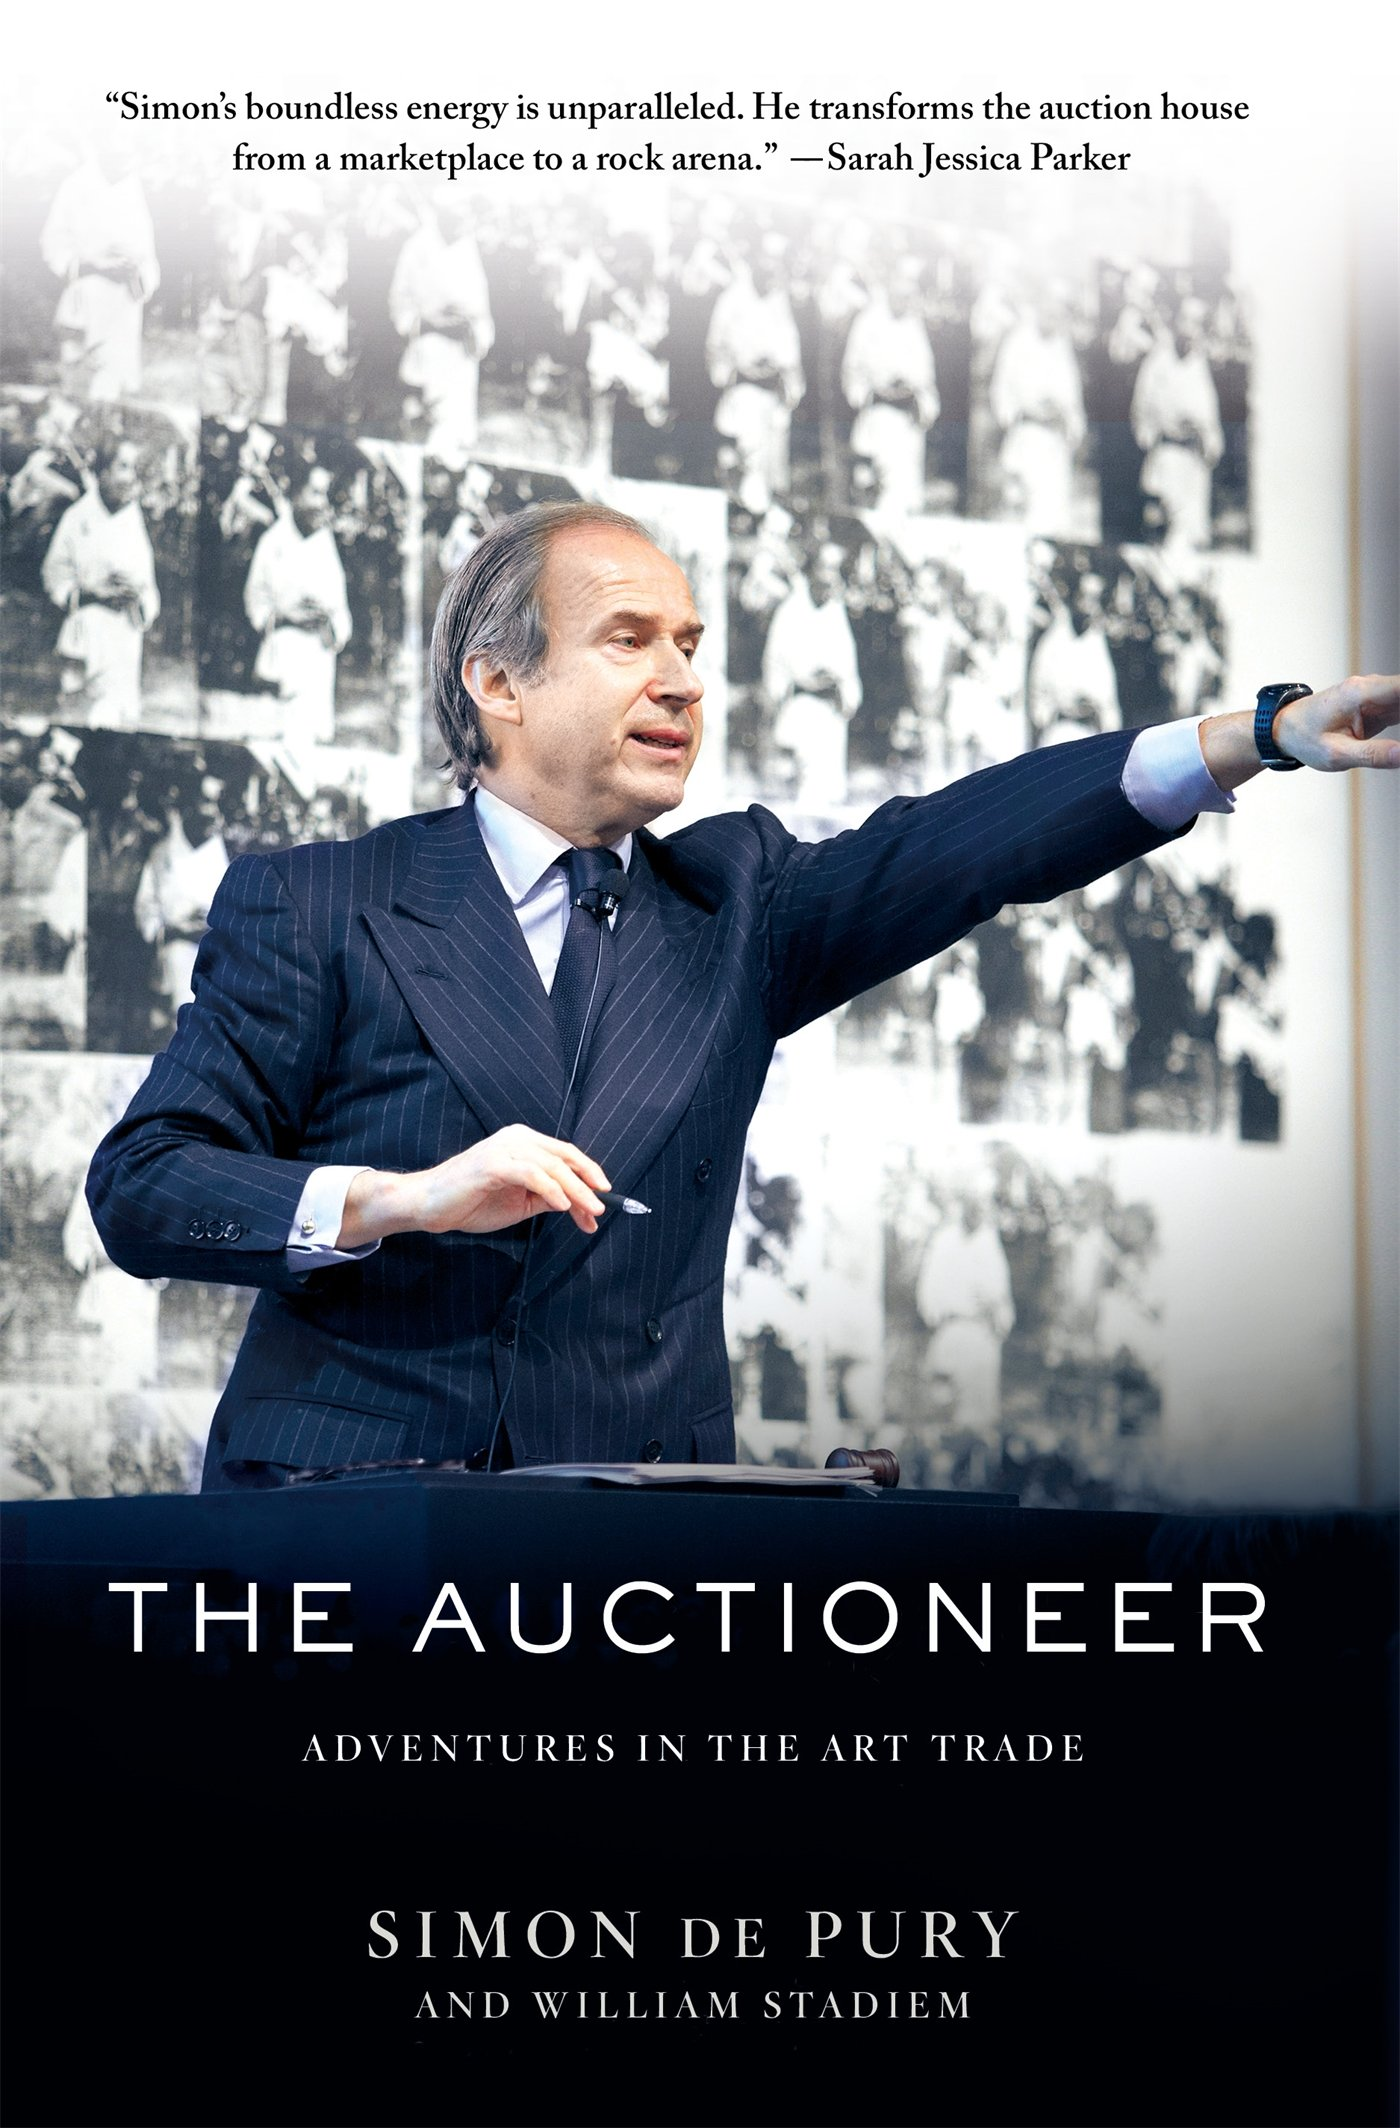 Download The Auctioneer: Adventures in the Art Trade PDF Text fb2 book